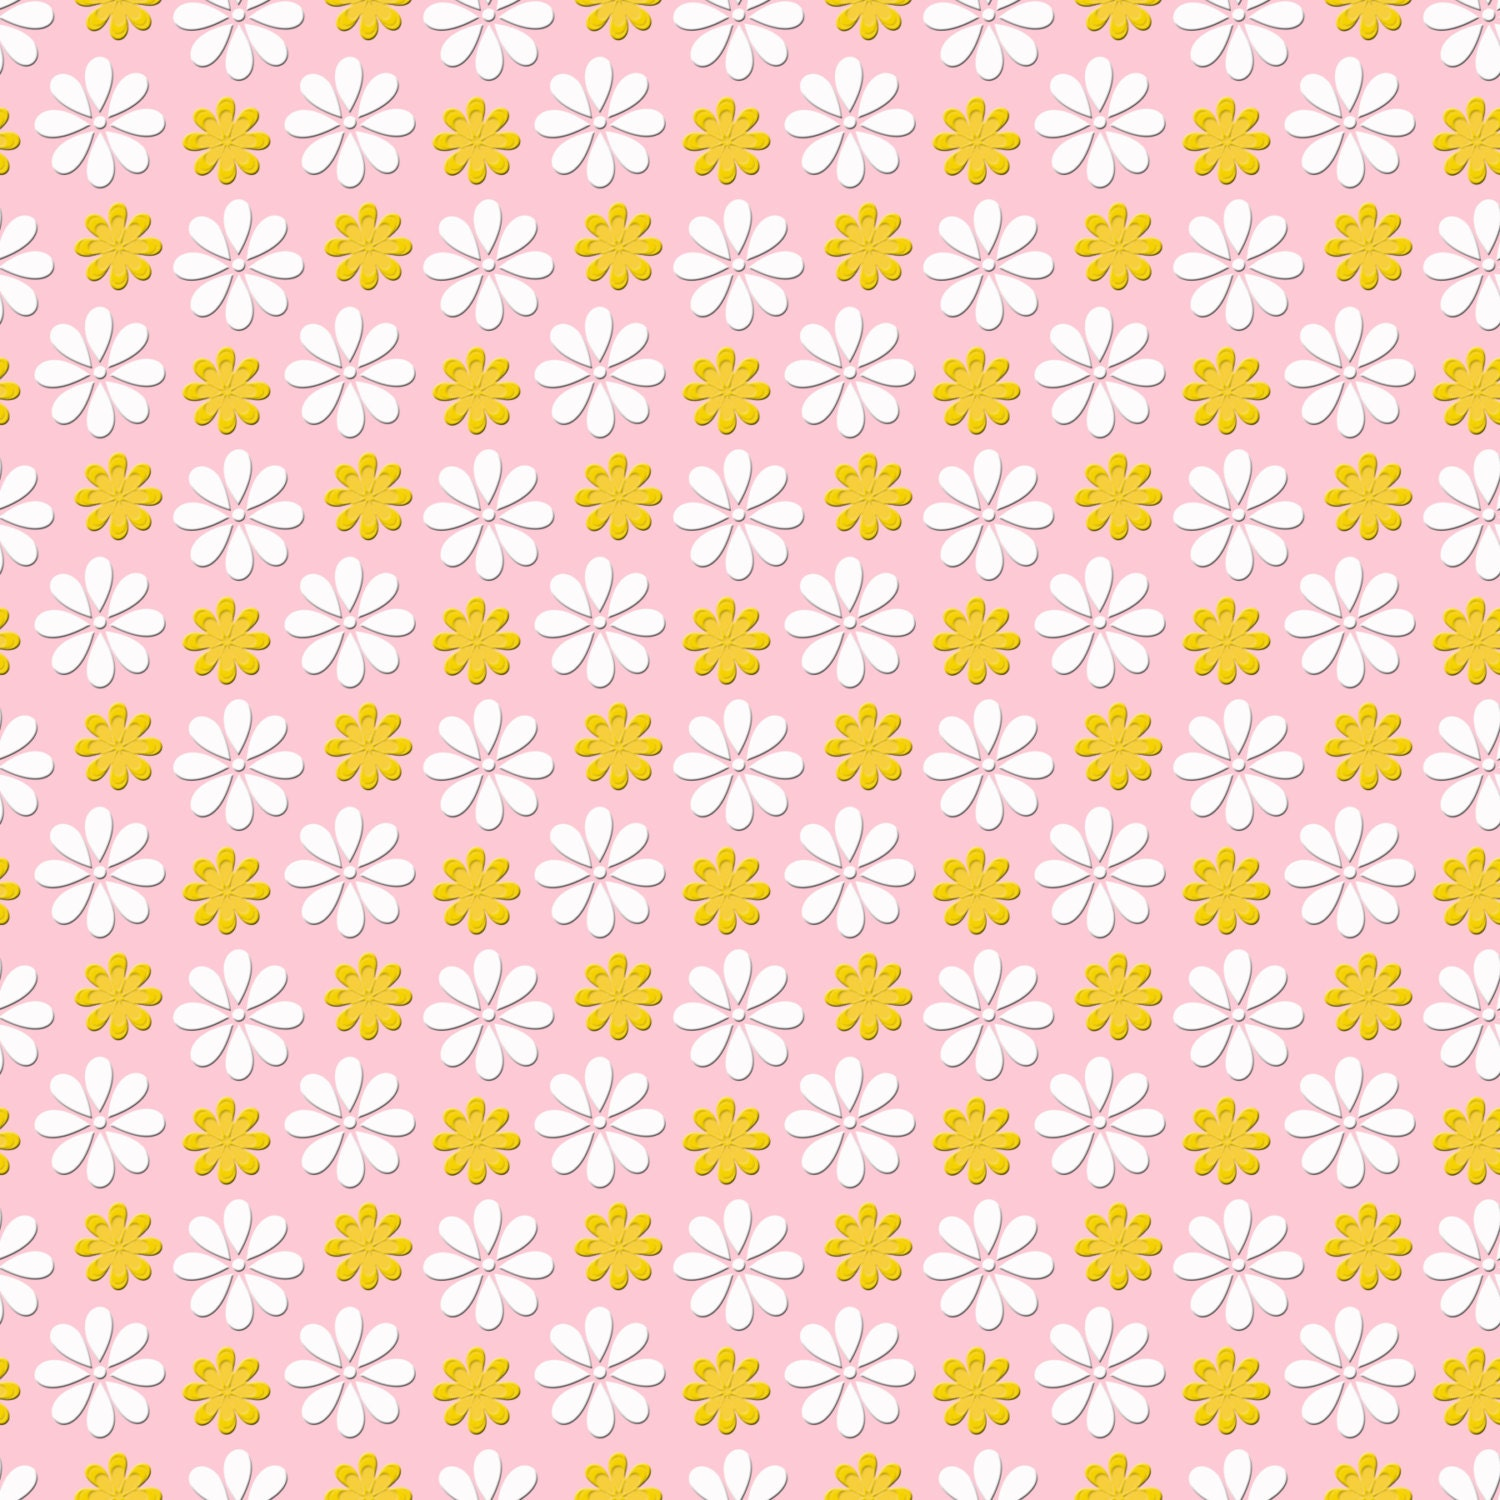 Spring scrapping spring paper flowered paper striped paper this is a digital file mightylinksfo